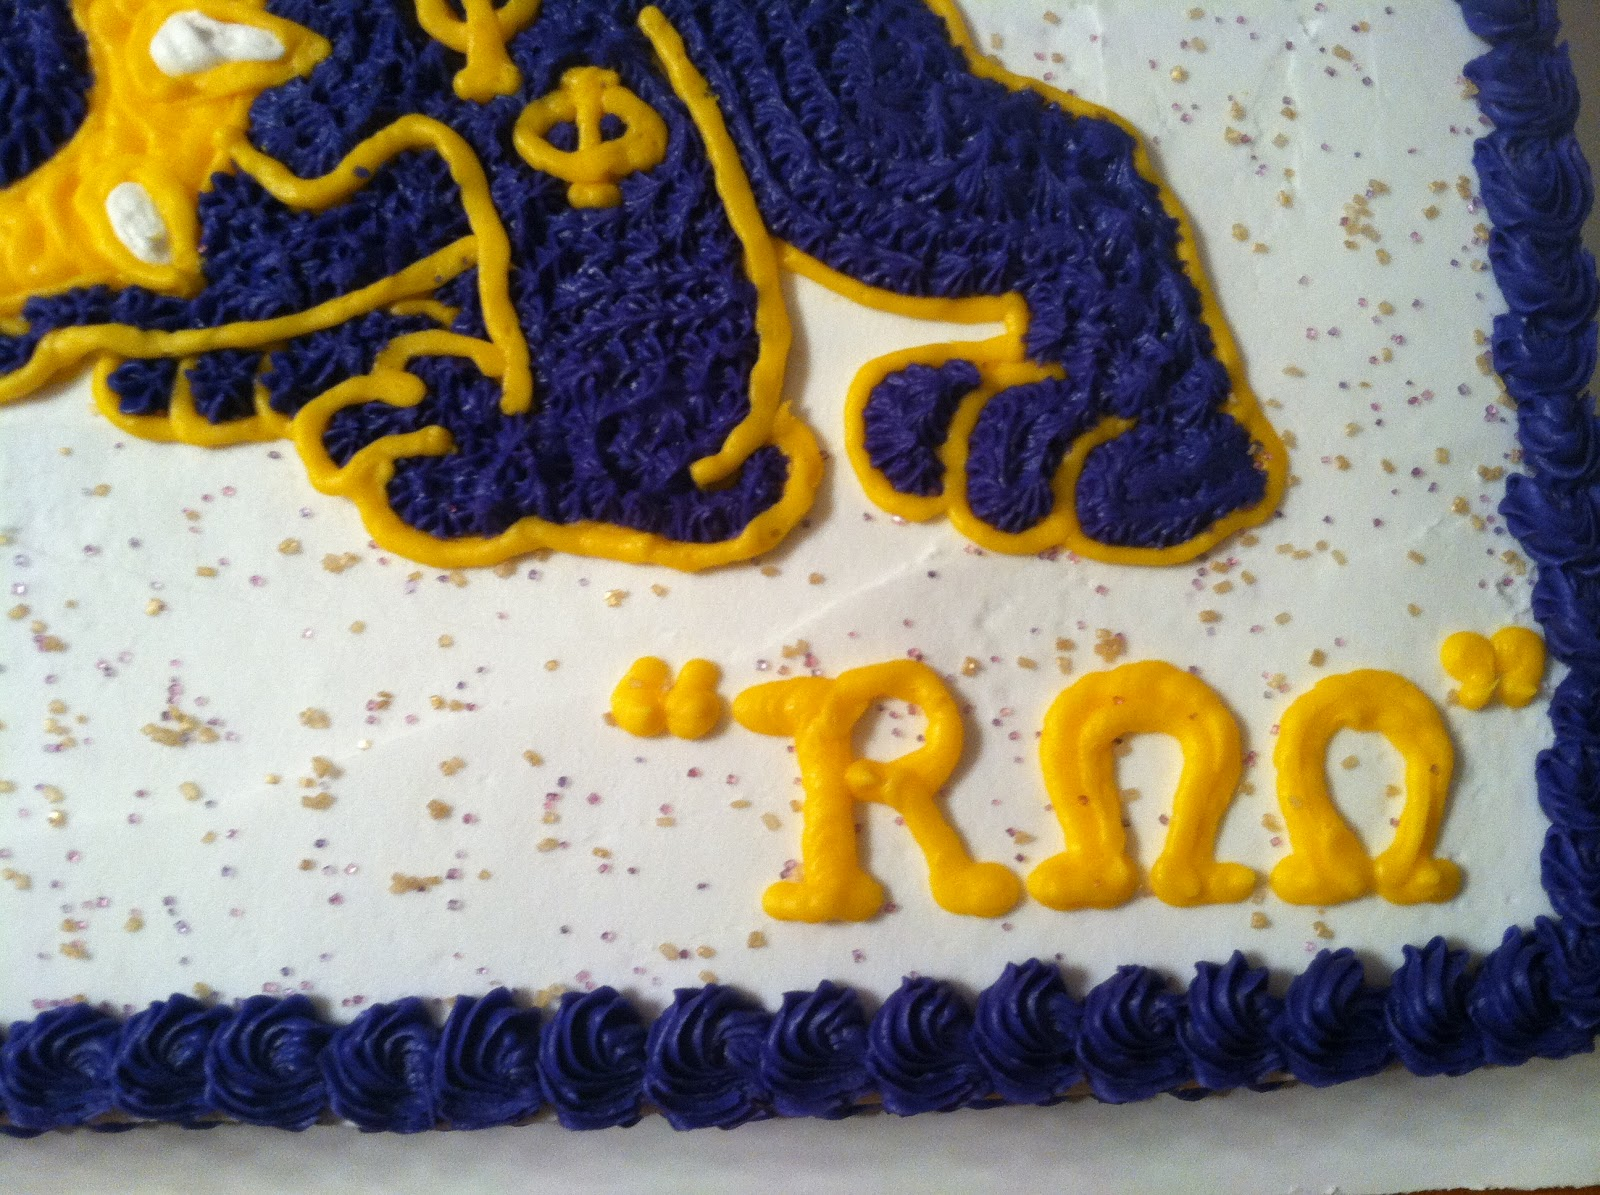 Introducing Omega Psi Phi Cake Caking For The Bruhs